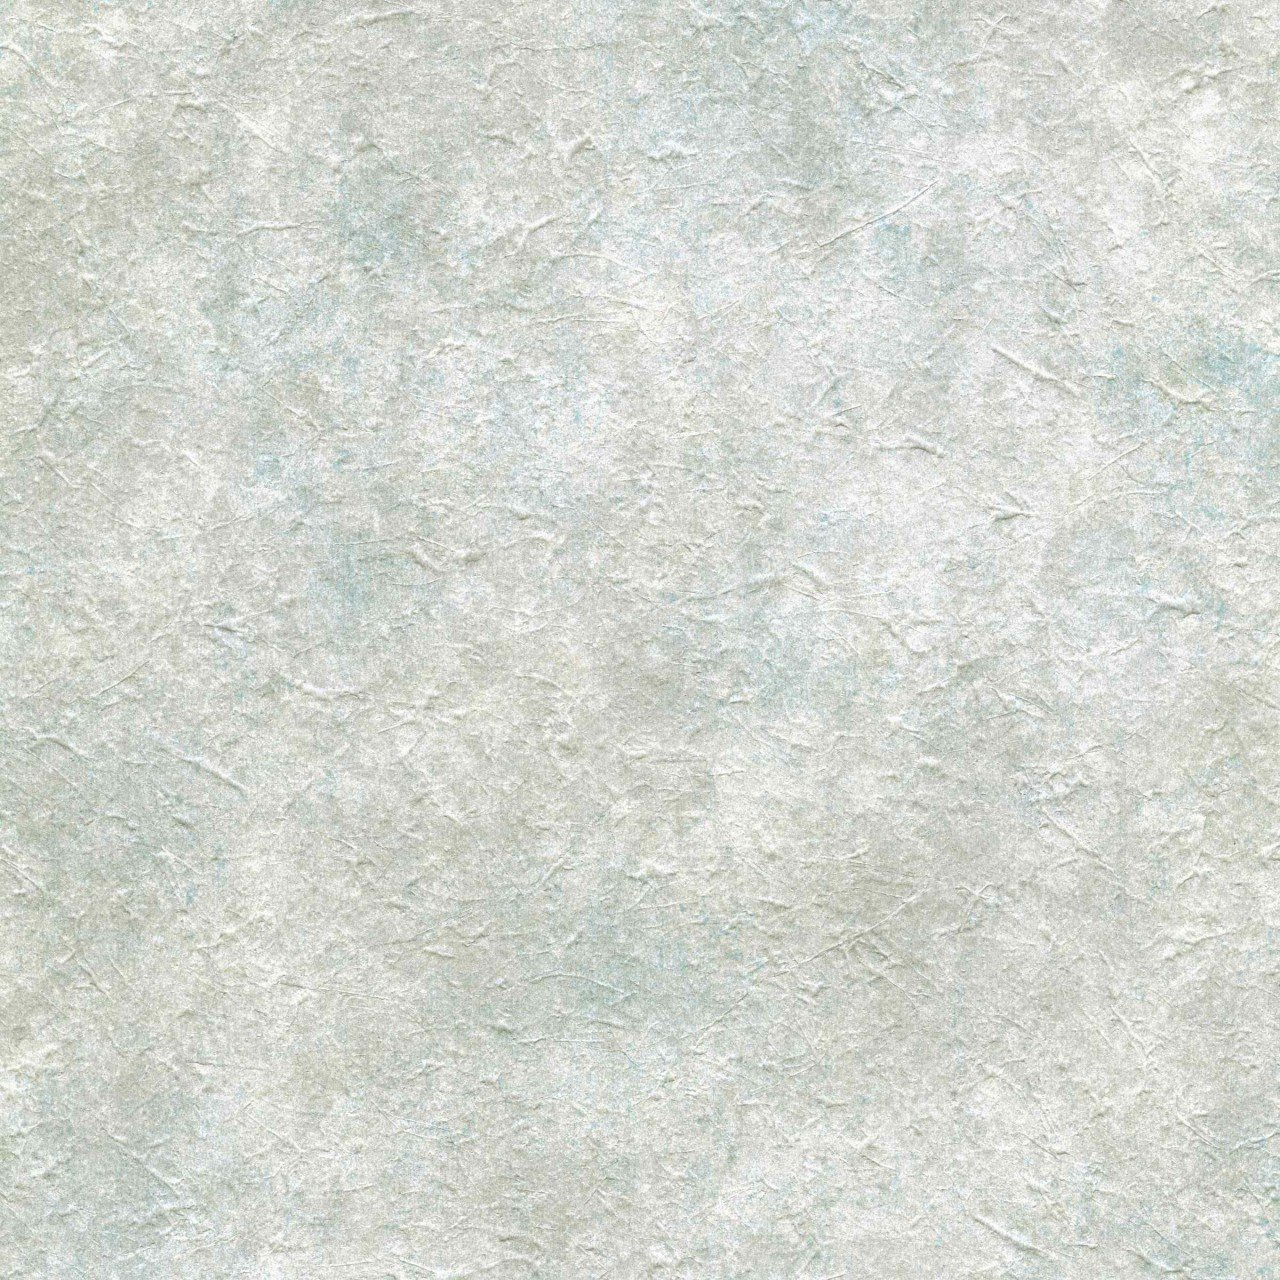 Blue Grey 98W2268 Faux Stone Wallpaper   Textures Wallpaper 1280x1280